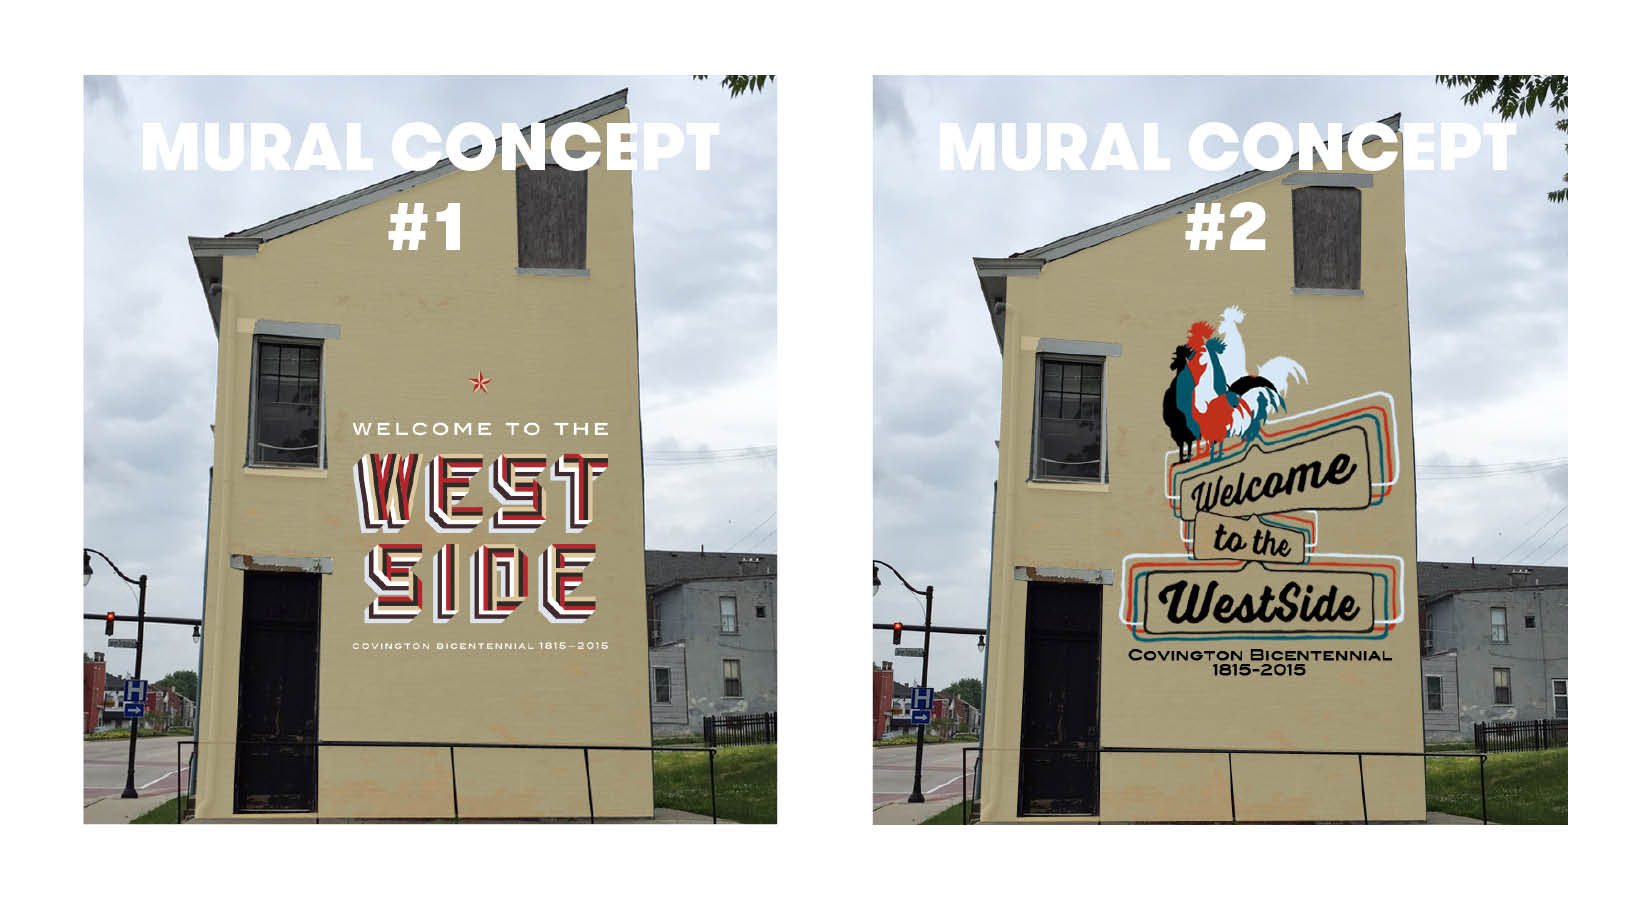 West Side Mural Concepts 1 & 2